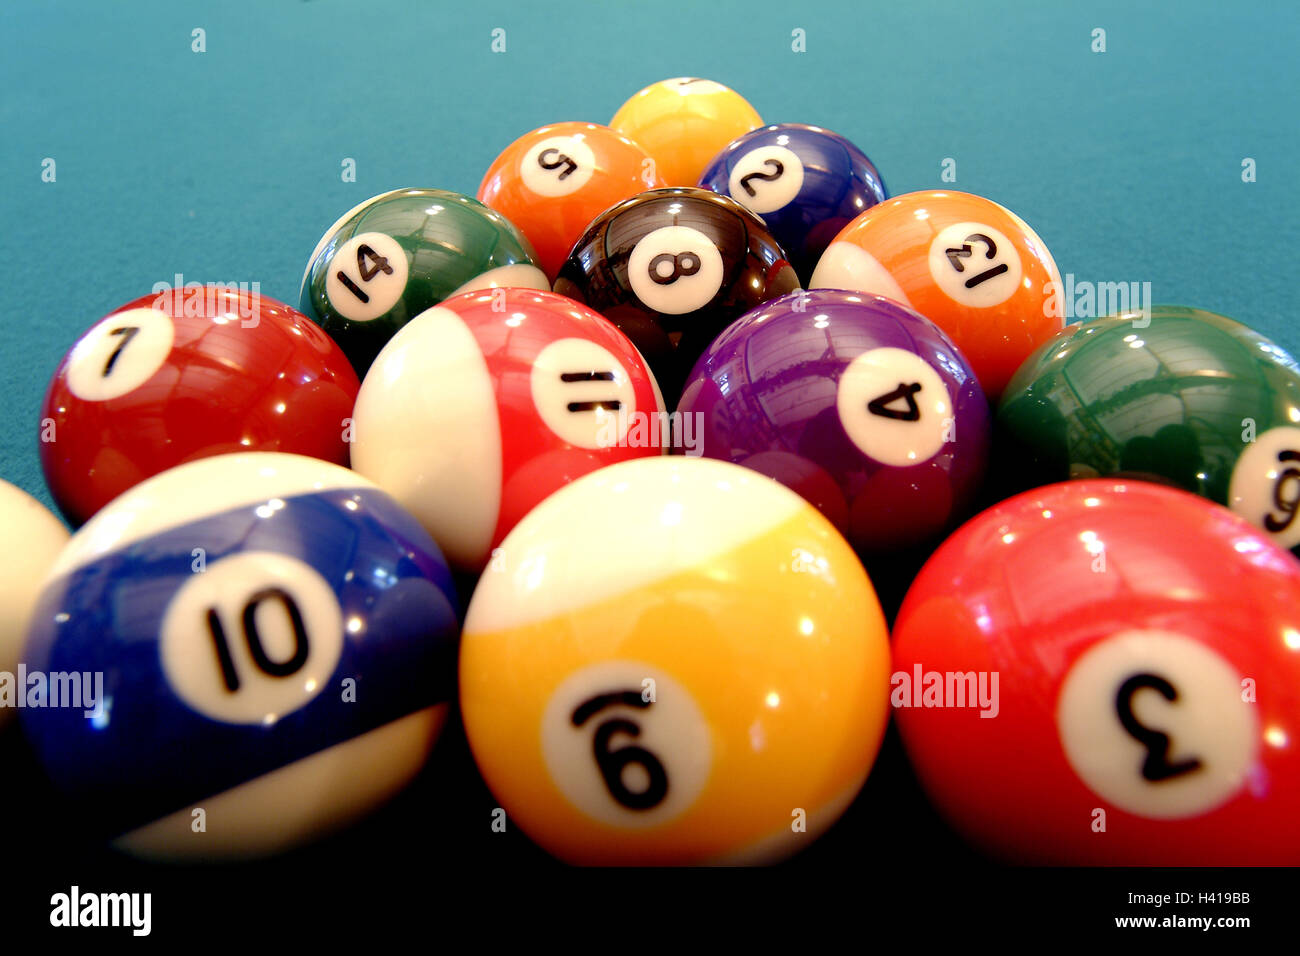 Billiard table, balls, entry level position   Billiard, game, billiard balls, balls, installation, beginning, game - Stock Image